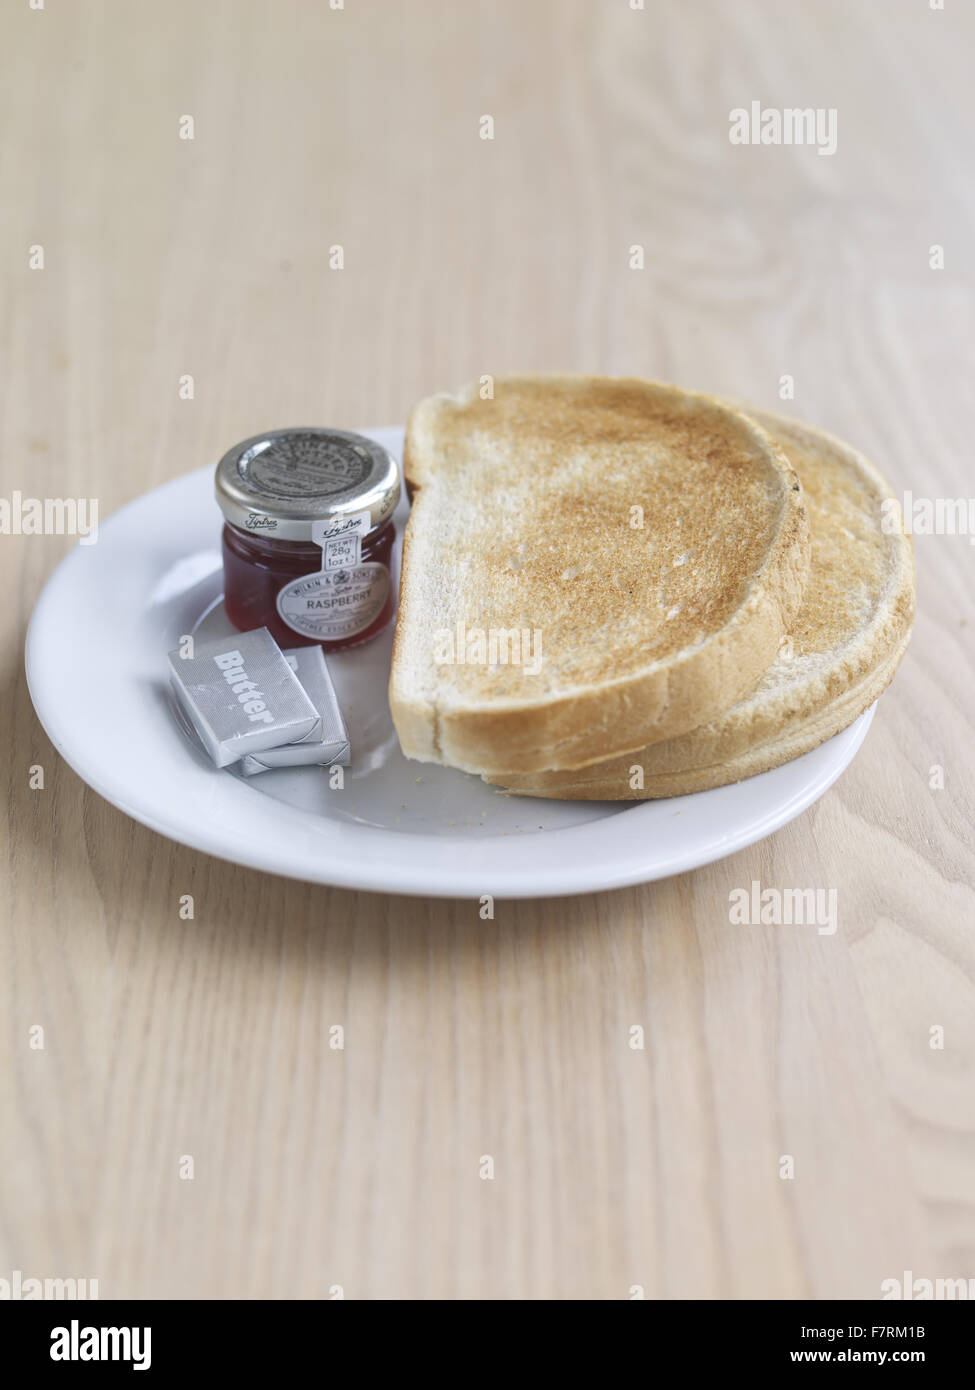 Toast and jam photographed for the 2015 National Trust Summer Cookbook. - Stock Image